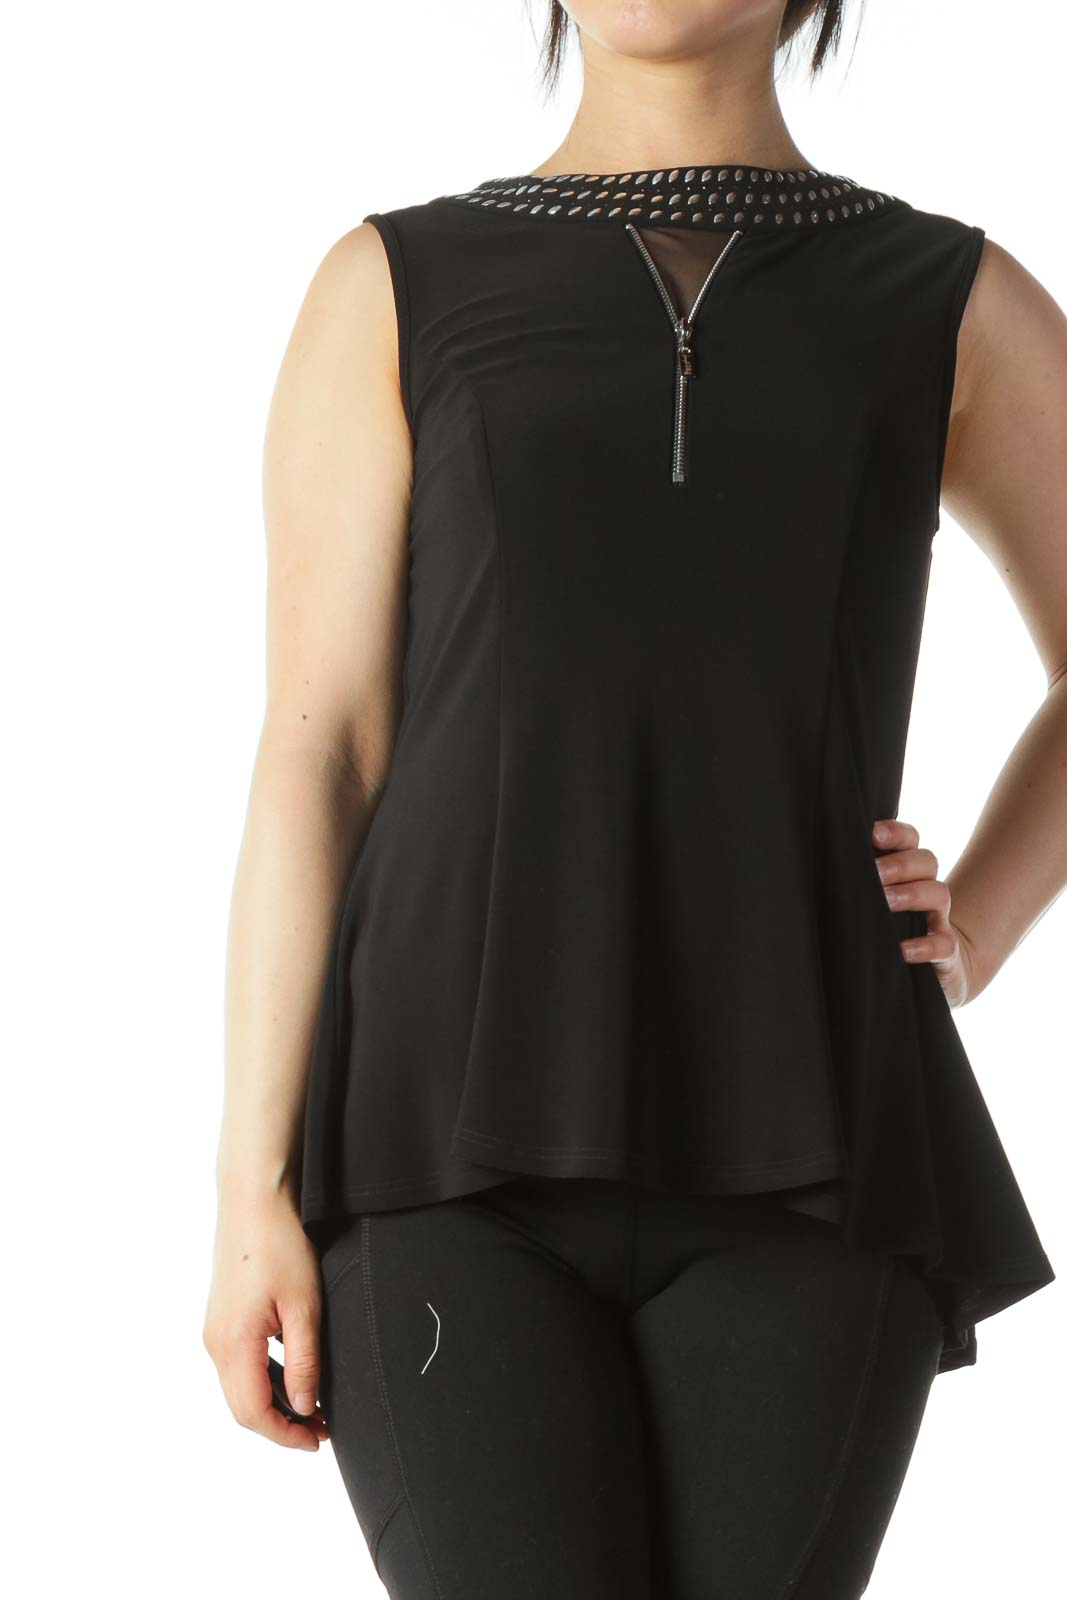 Black Studded and Zipper Detail Neckline A-Line Top Front